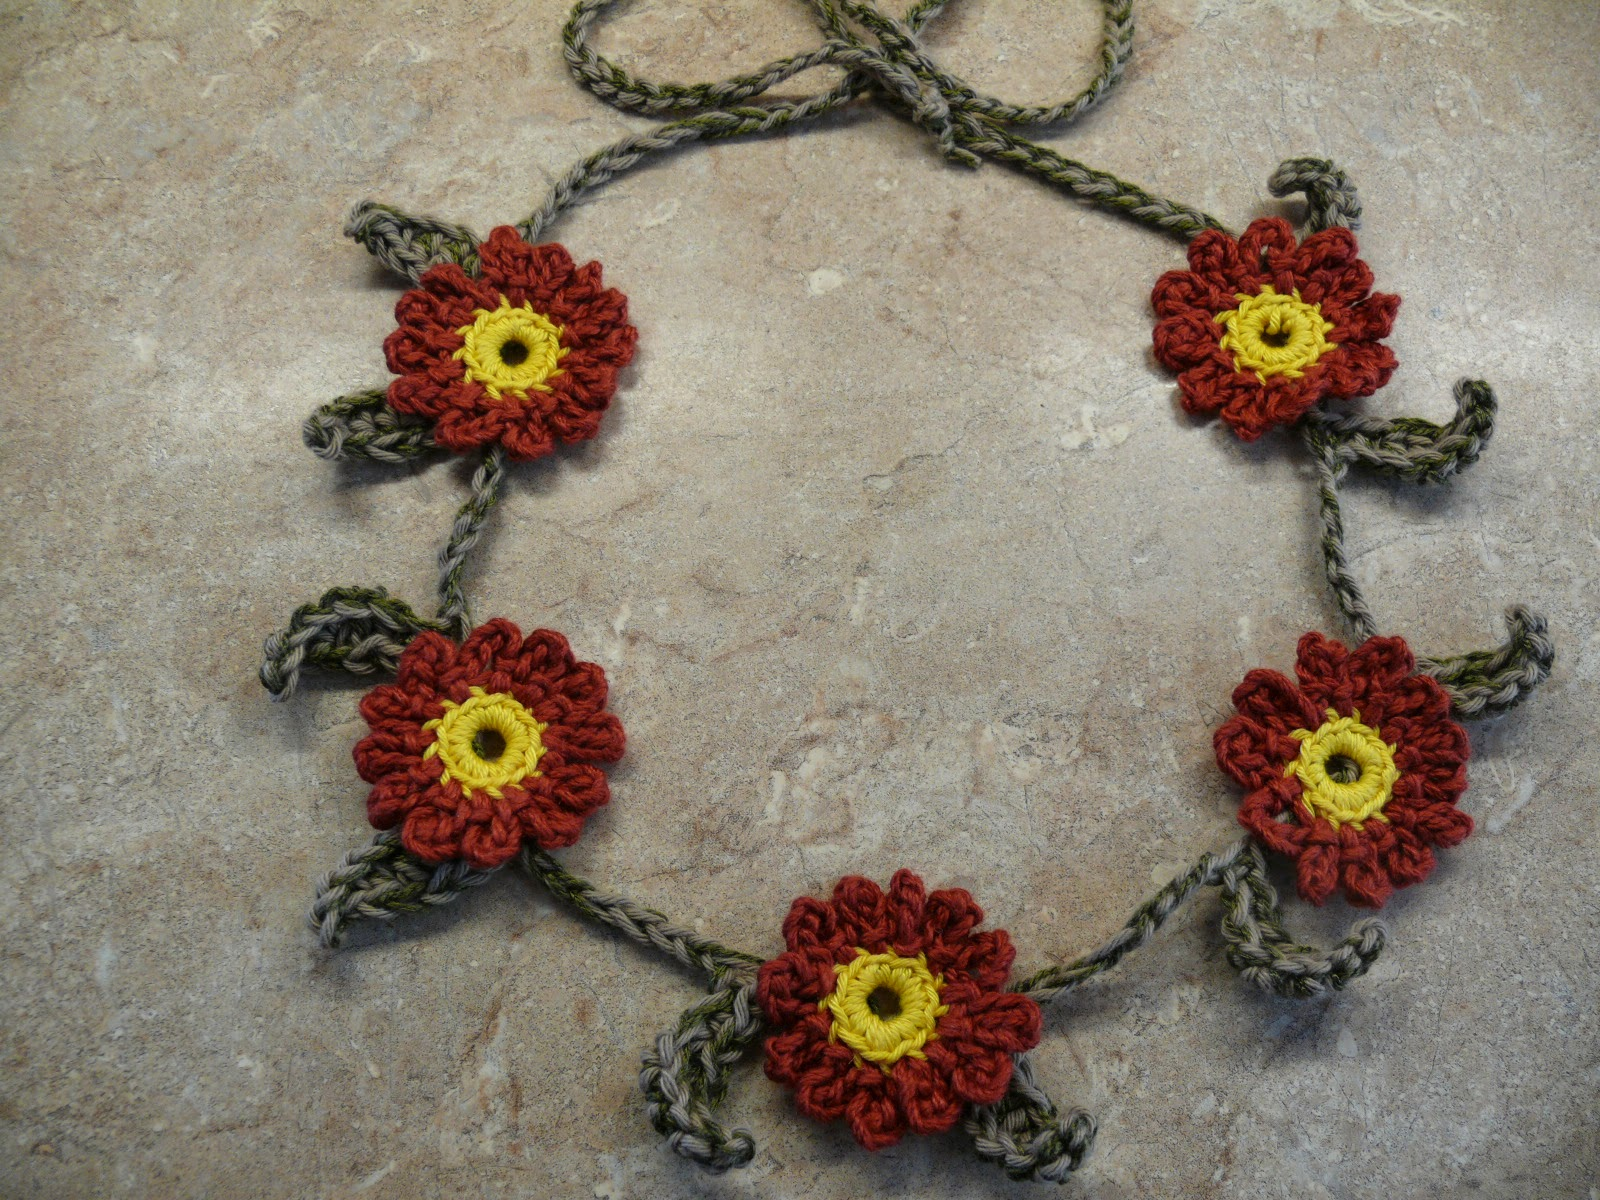 String Theory Crochet: Summer Flowers in Your Hair? Free Crochet ...